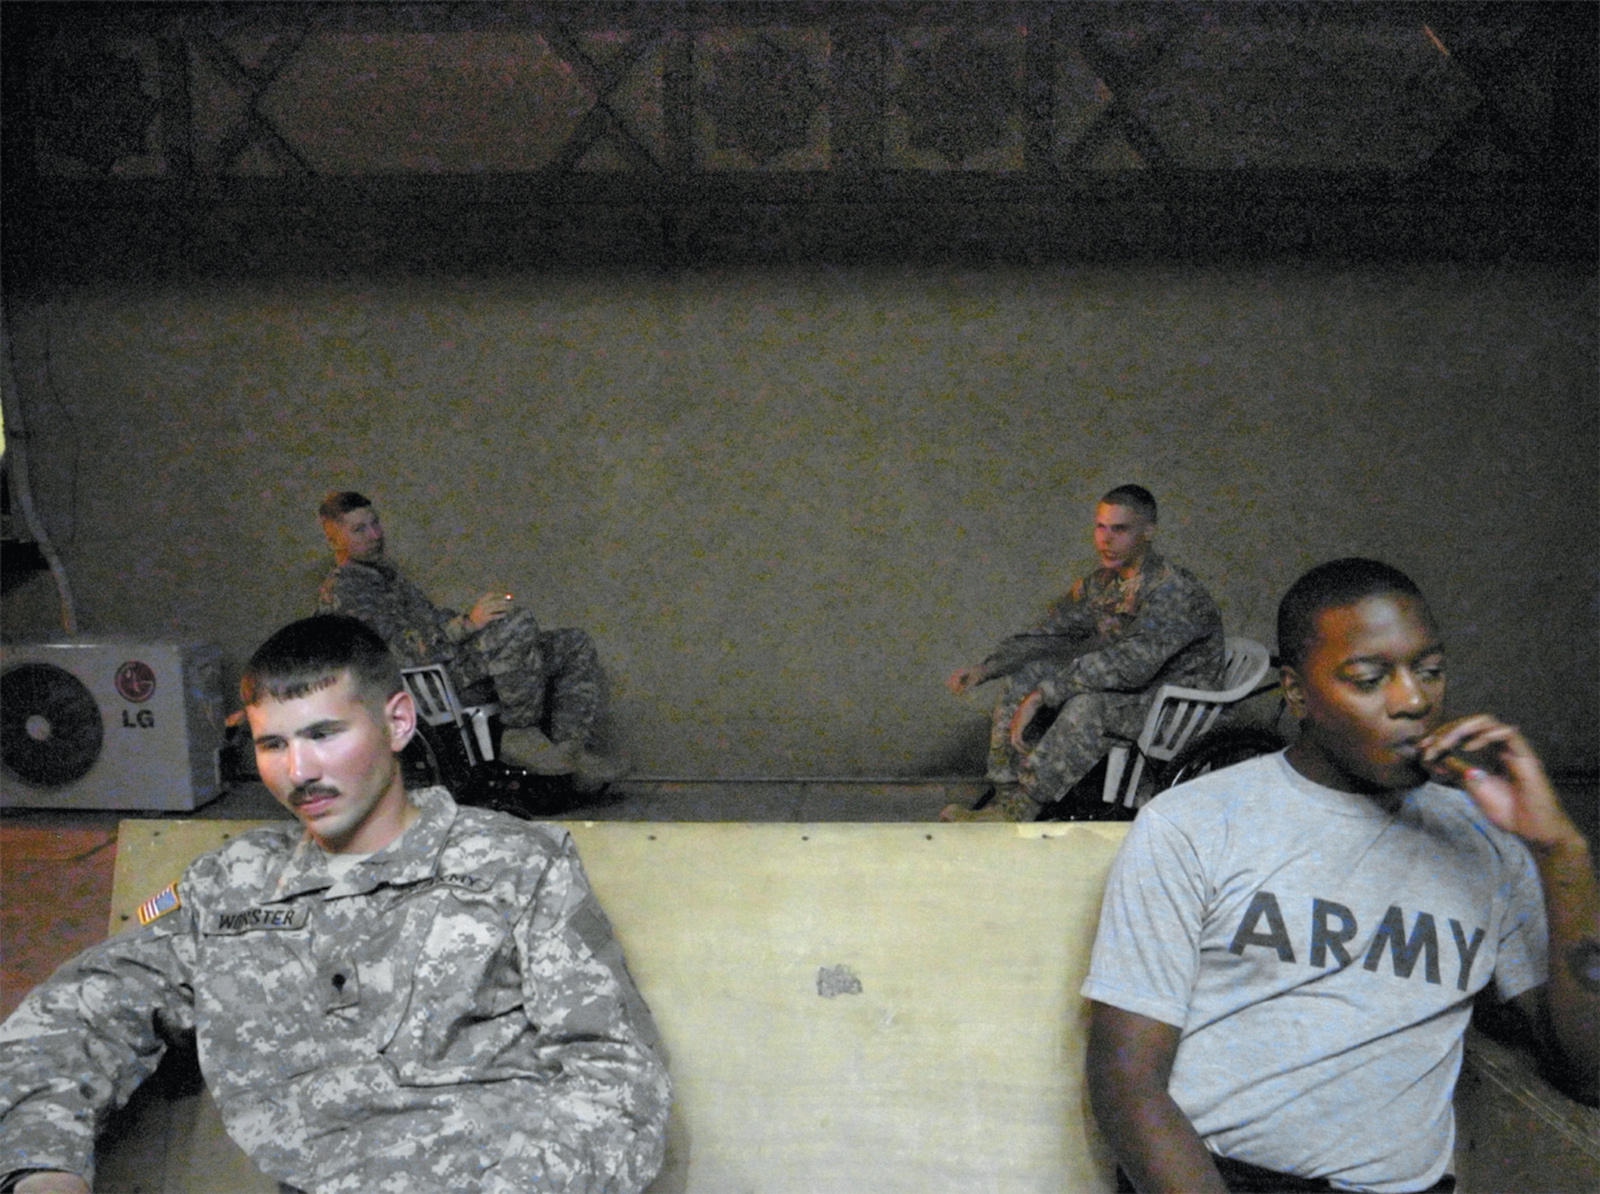 Army medic James Worster (left) with fellow soldiers in Baghdad, 2006. Worster, who worked in a combat support hospital, suffered from PTSD and died of an overdose days before the end of his second tour.